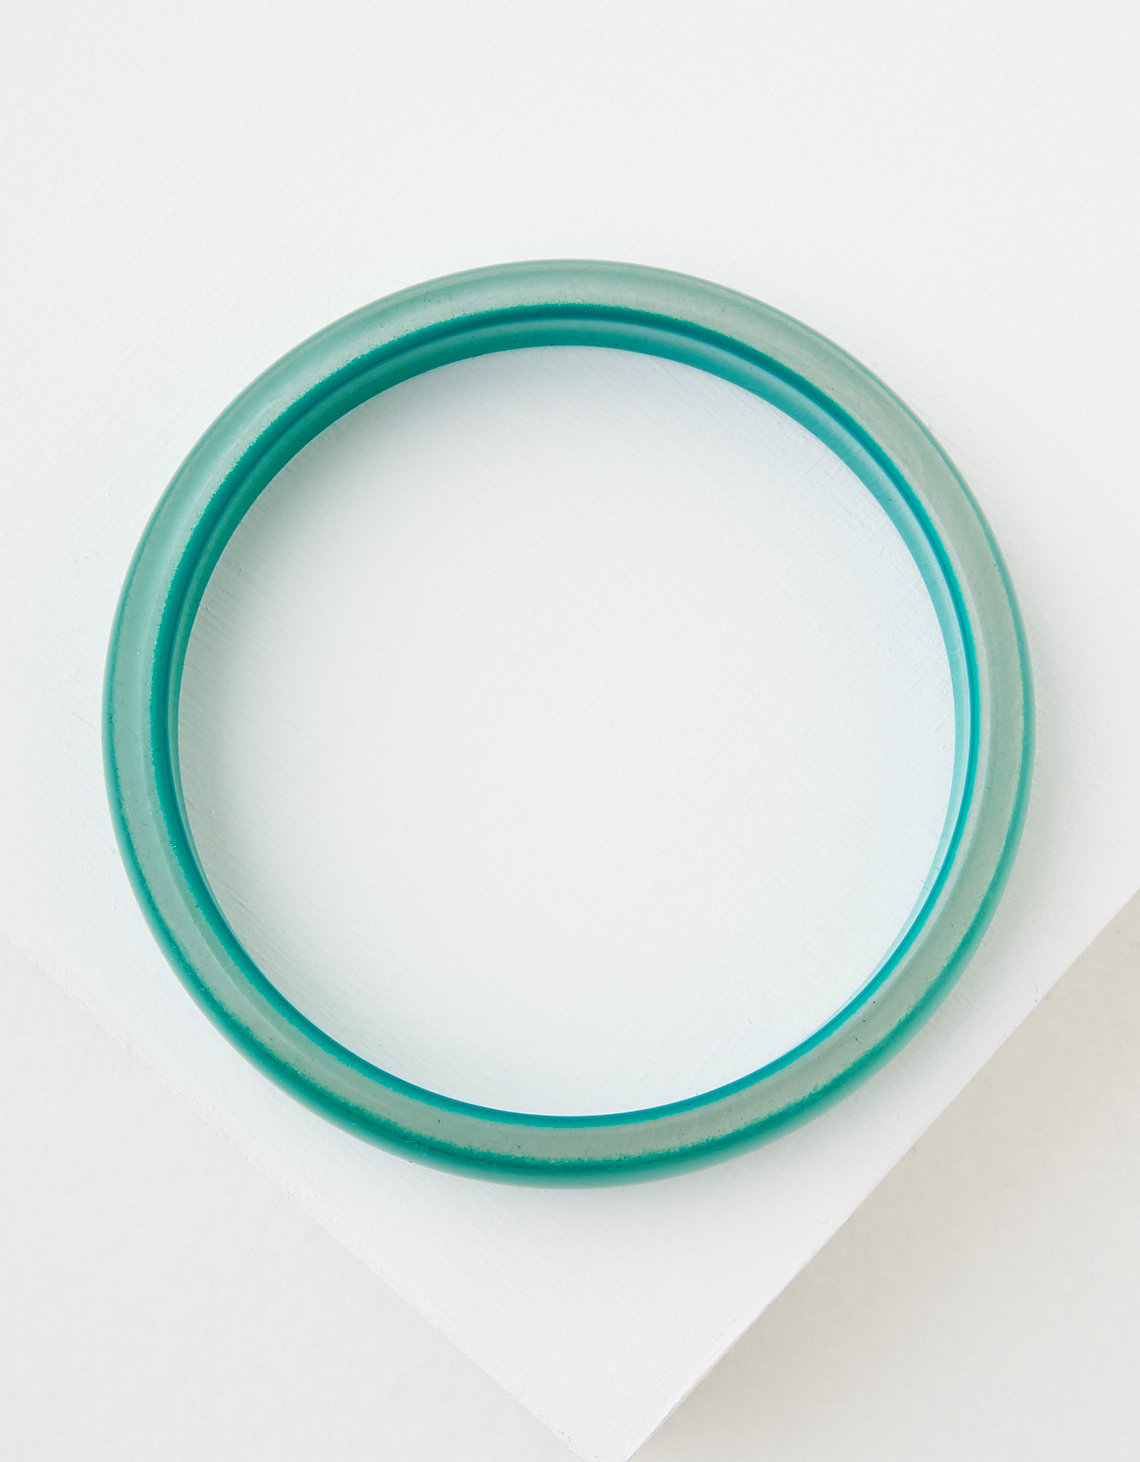 AEO Neon Plastic Bangle